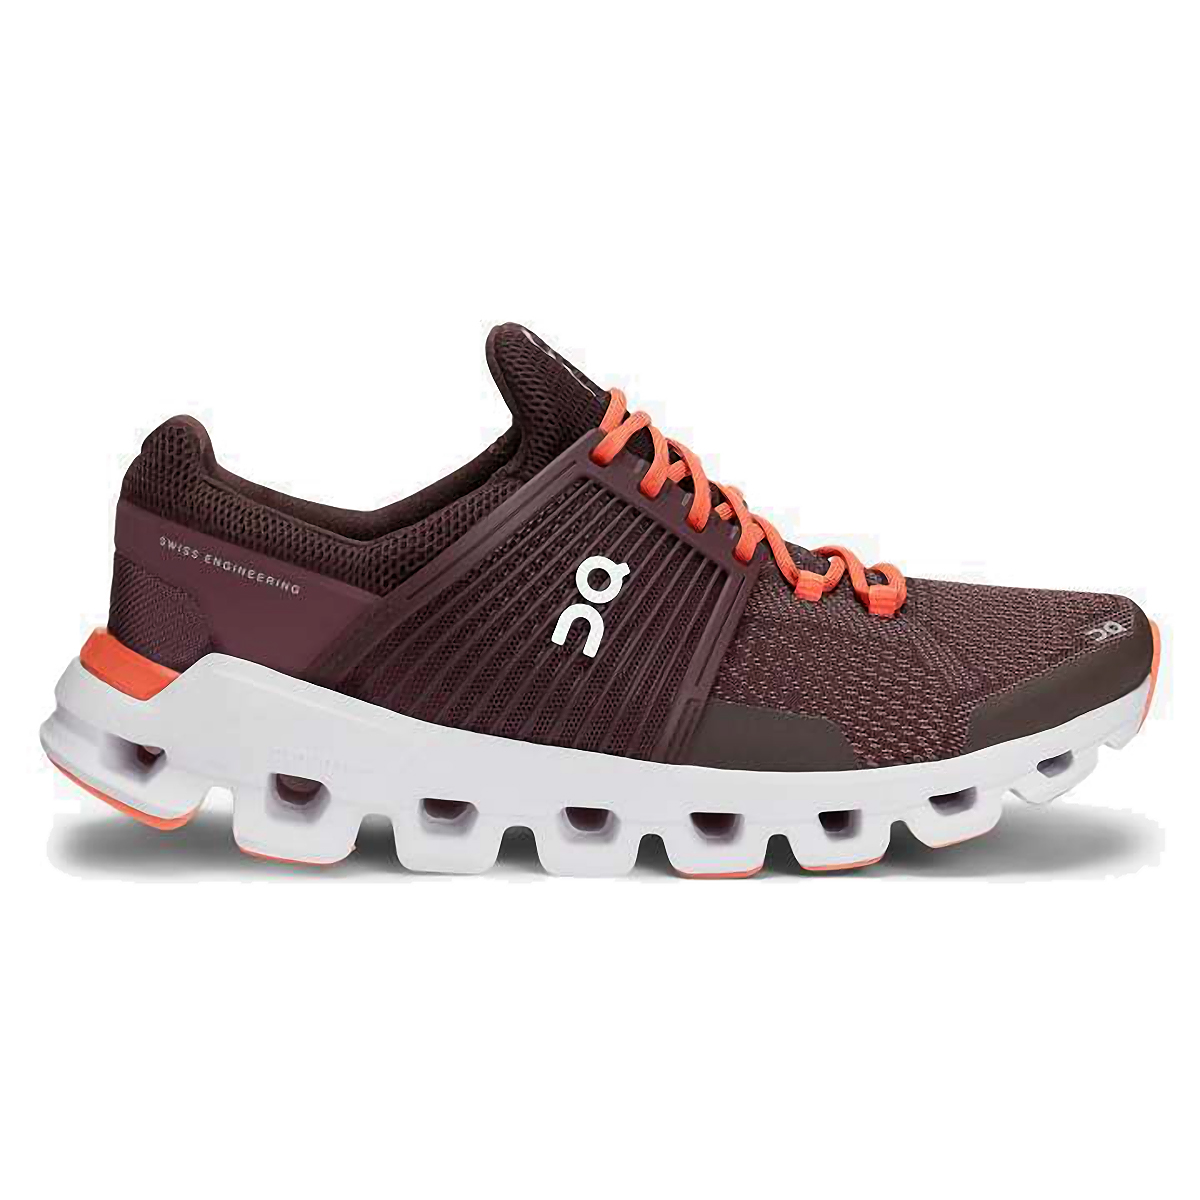 Women's On Cloudswift Running Shoe - Color: Plum/Dawn - Size: 6 - Width: Regular, Plum/Dawn, large, image 1